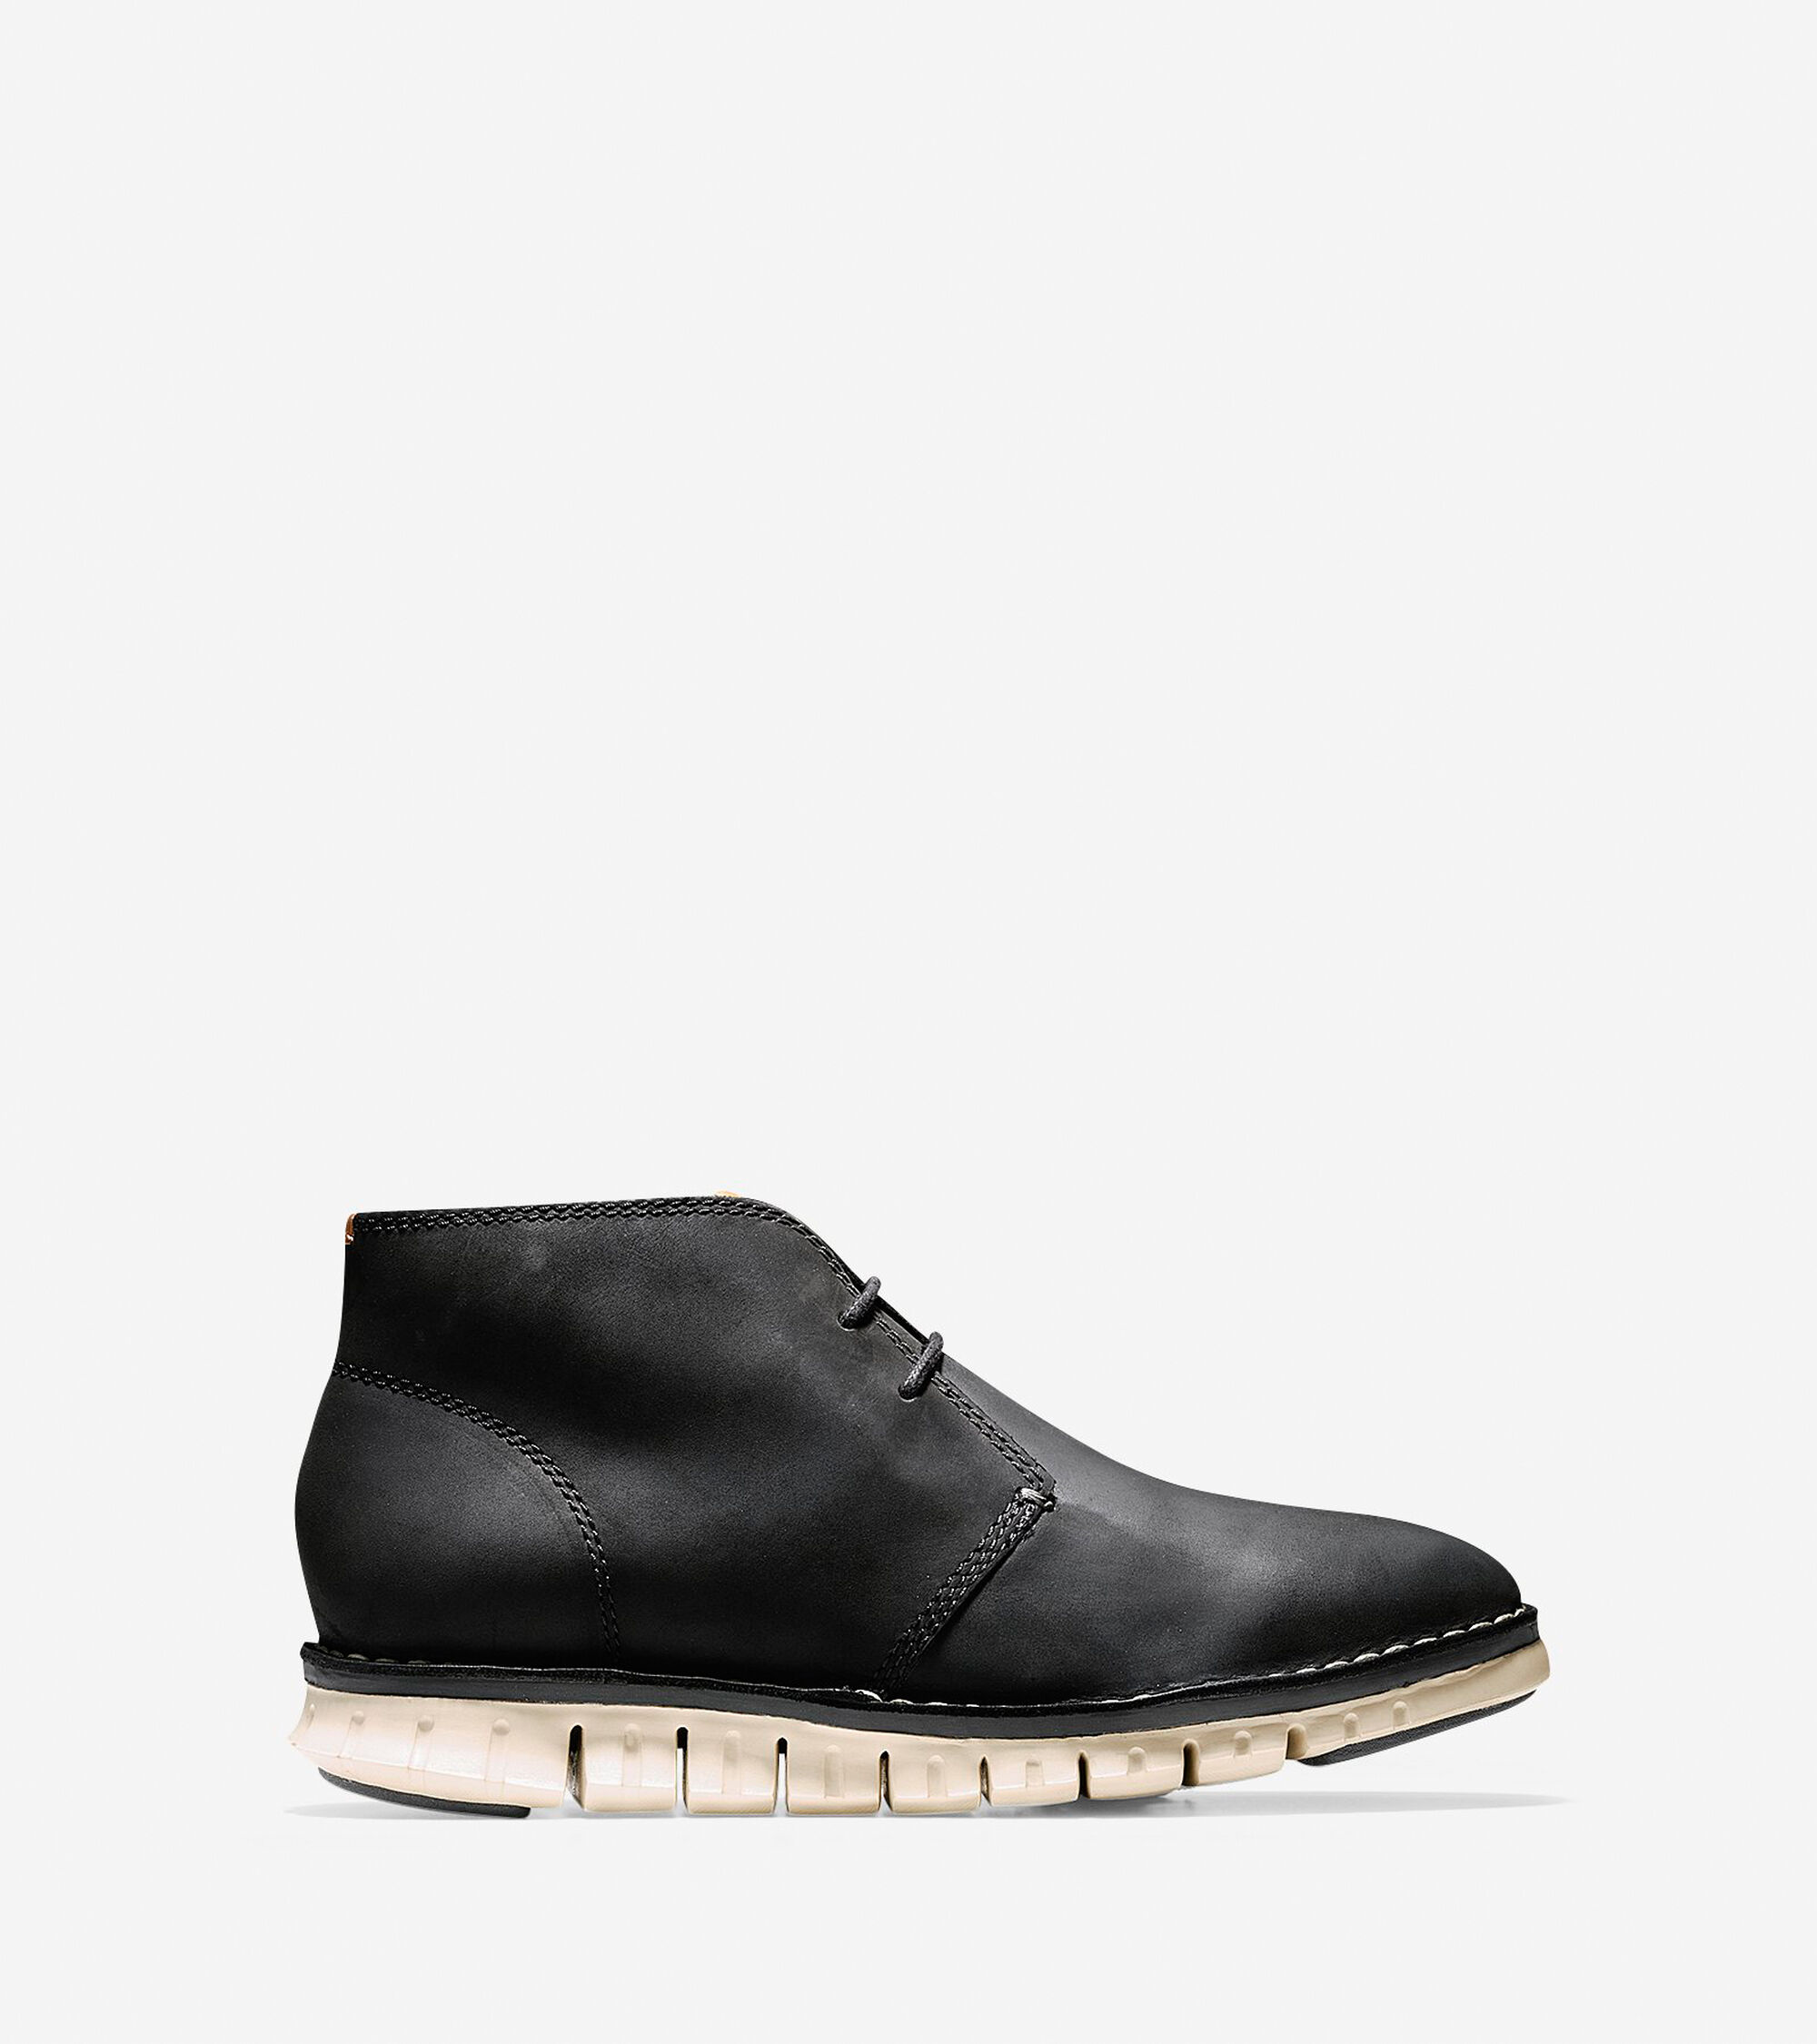 ZEROGRAND Stitch Out Chukkas In Black Waxy Cole Haan